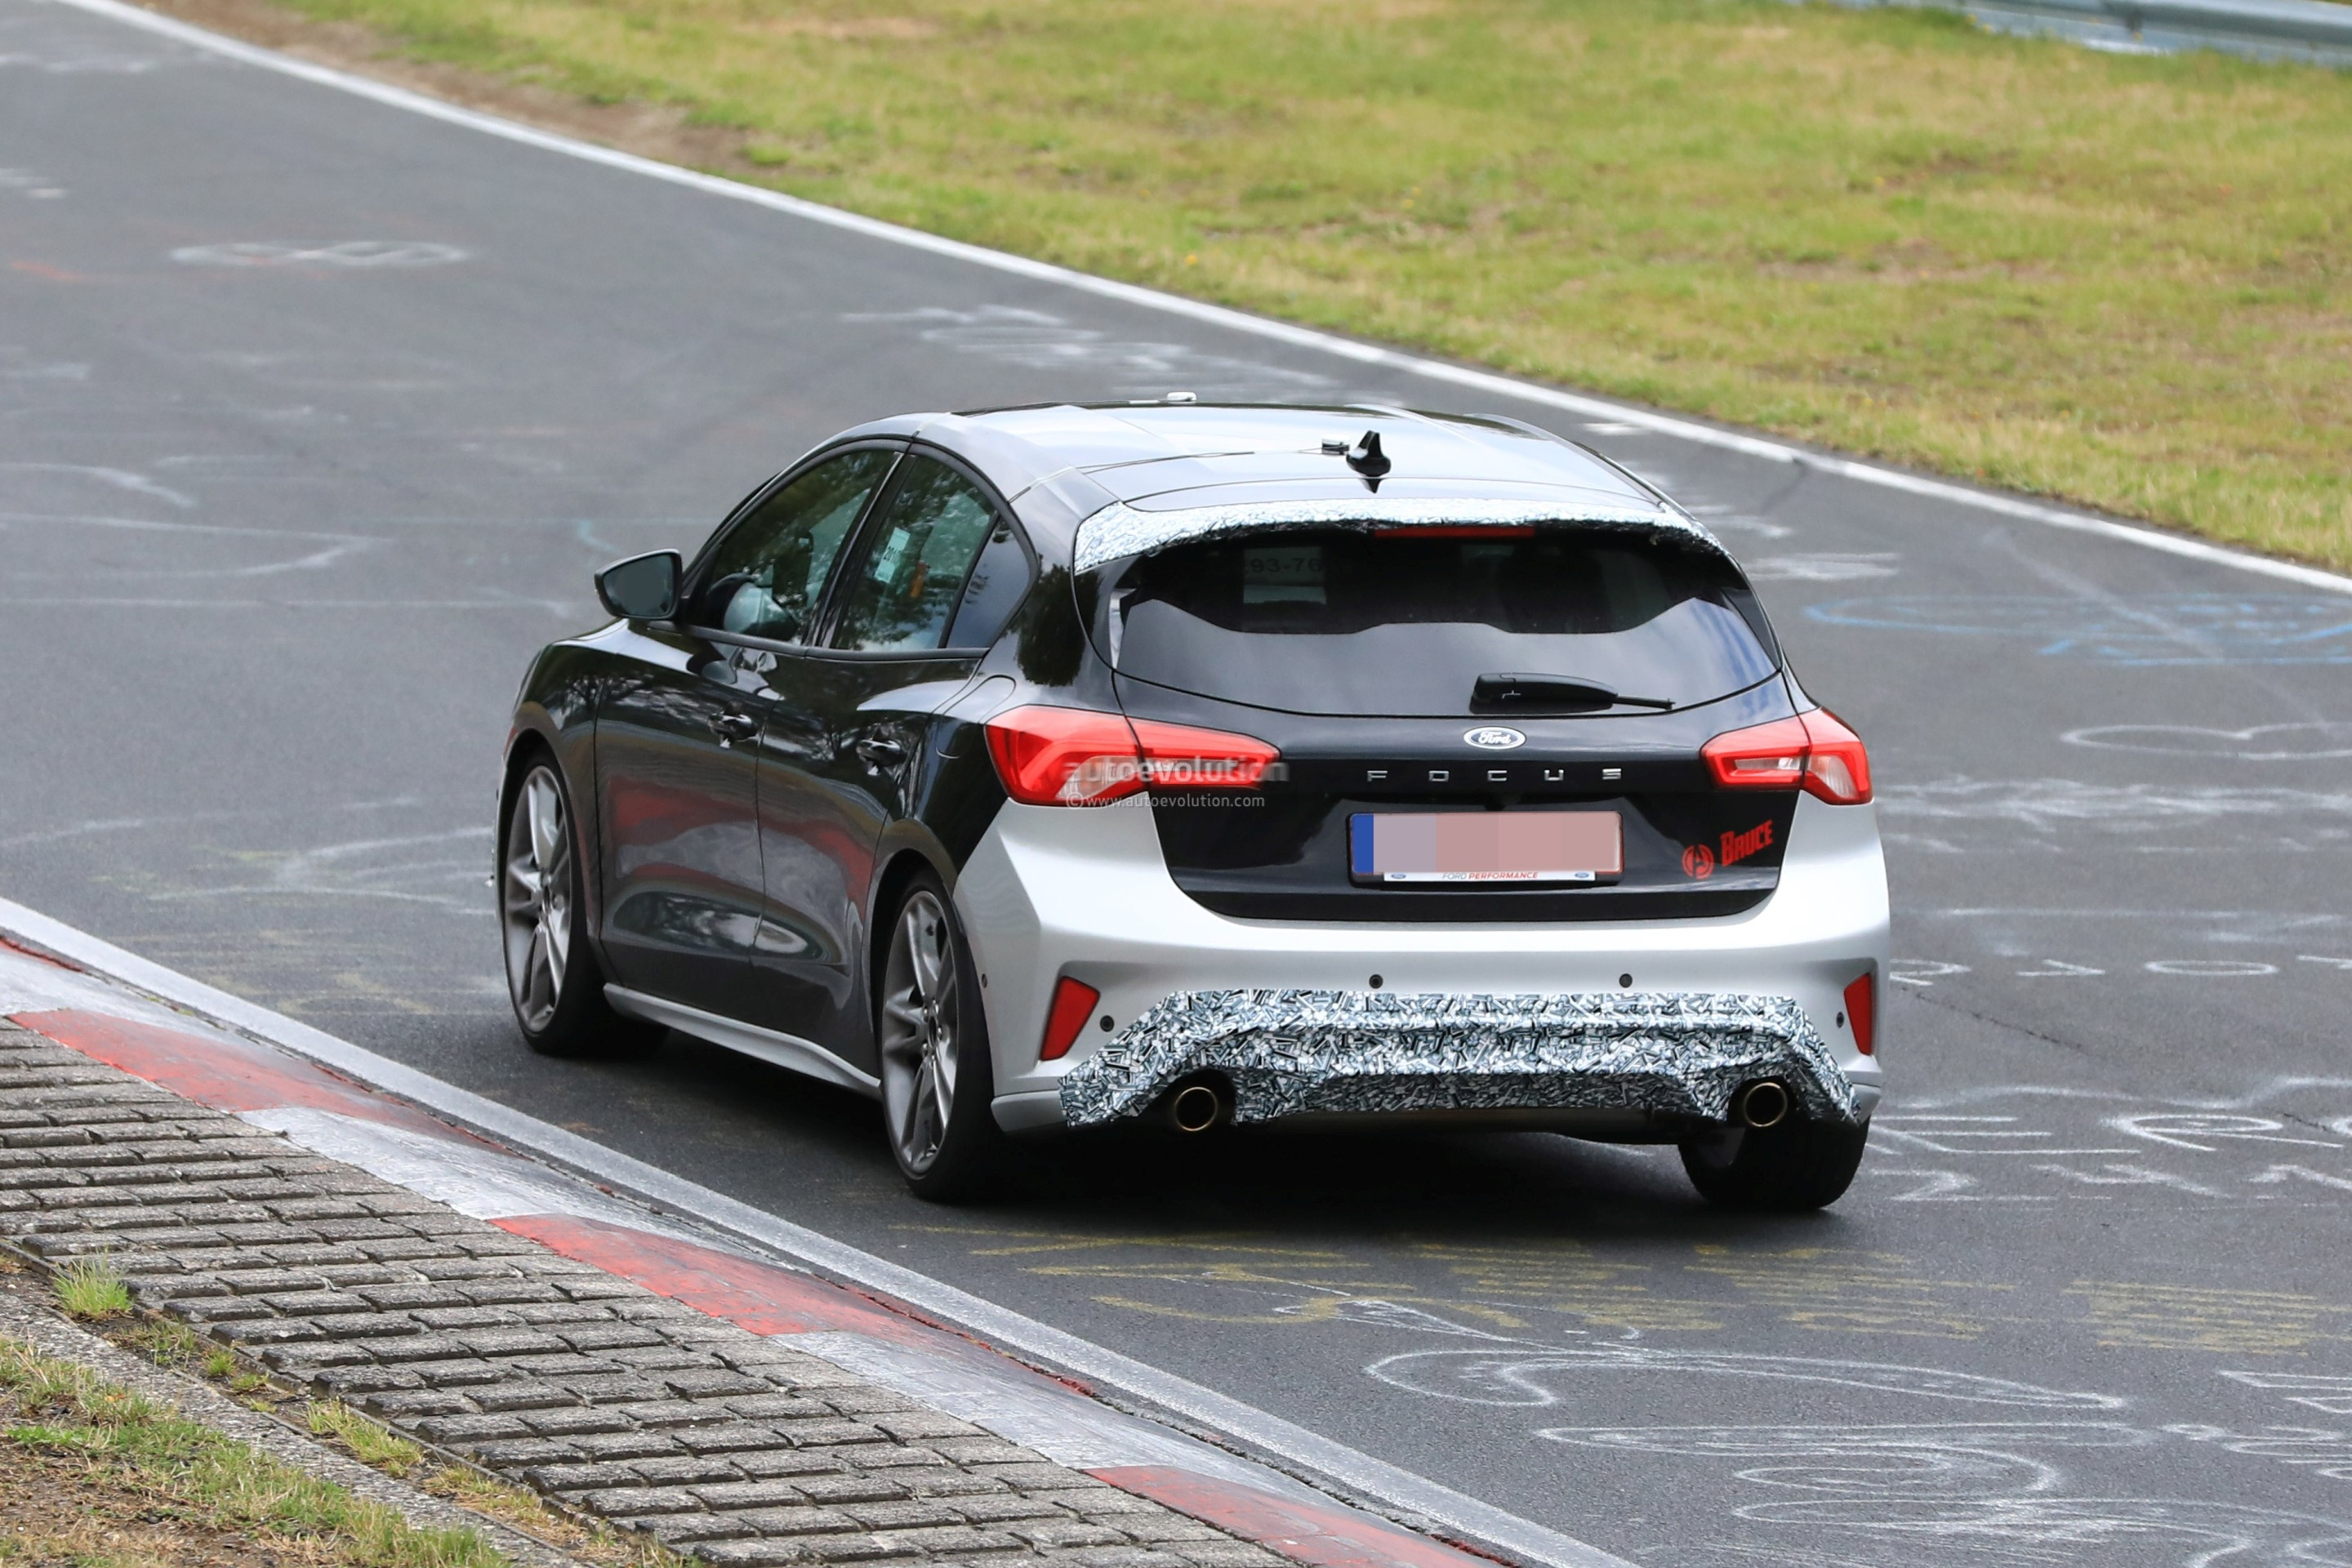 2018 - [Ford] Focus IV - Page 13 New-ford-focus-st-hits-nurburgring-will-offer-20l-turbo-and-automatic_8